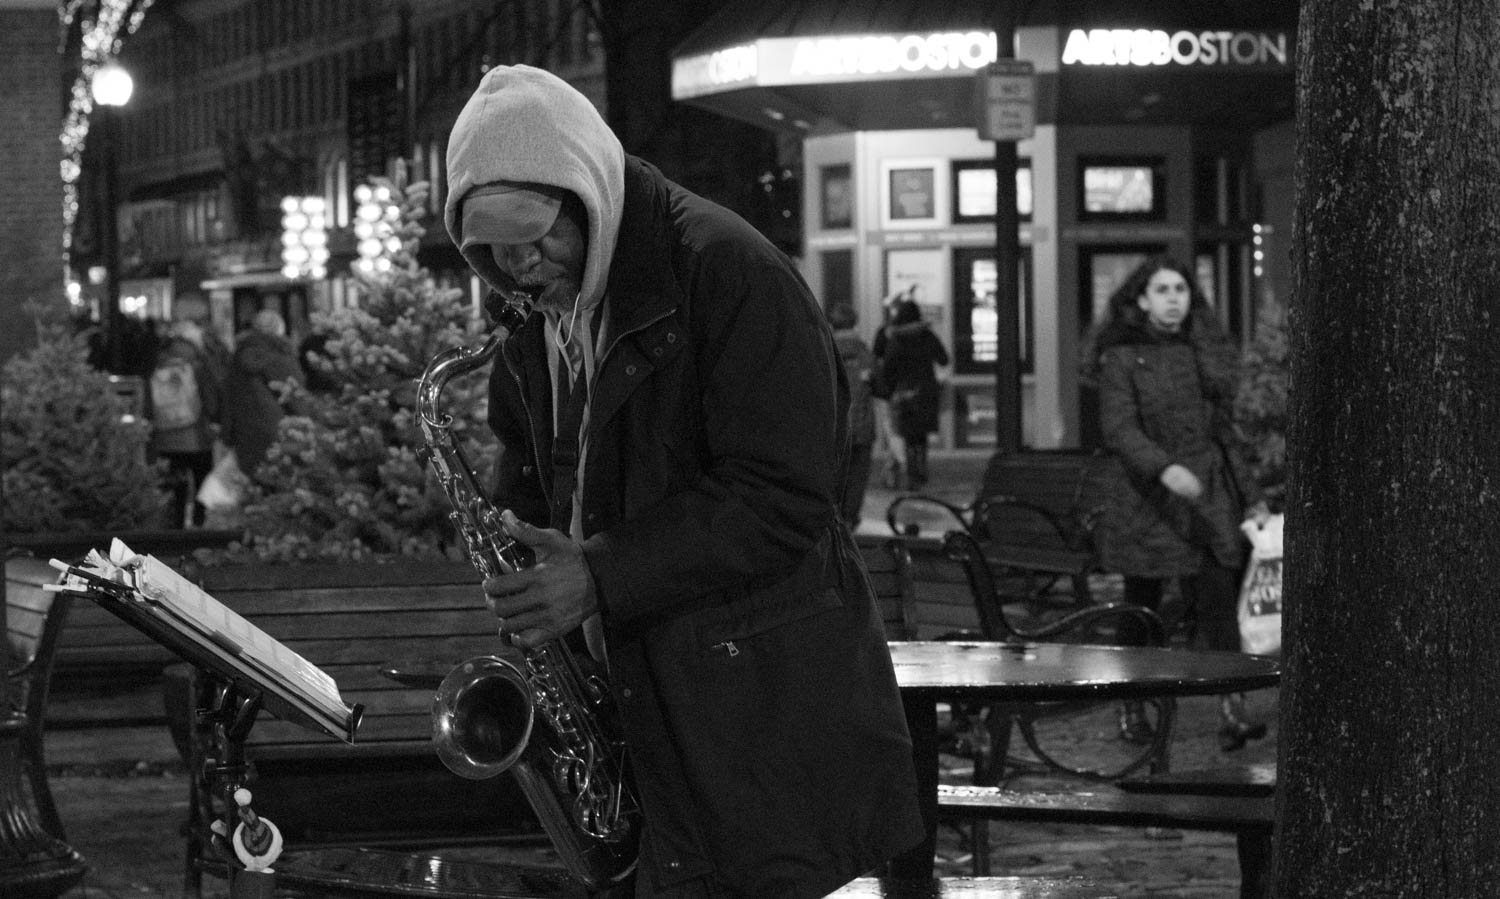 12-24-16 810_1714 Man Sax Boston (1).jpg